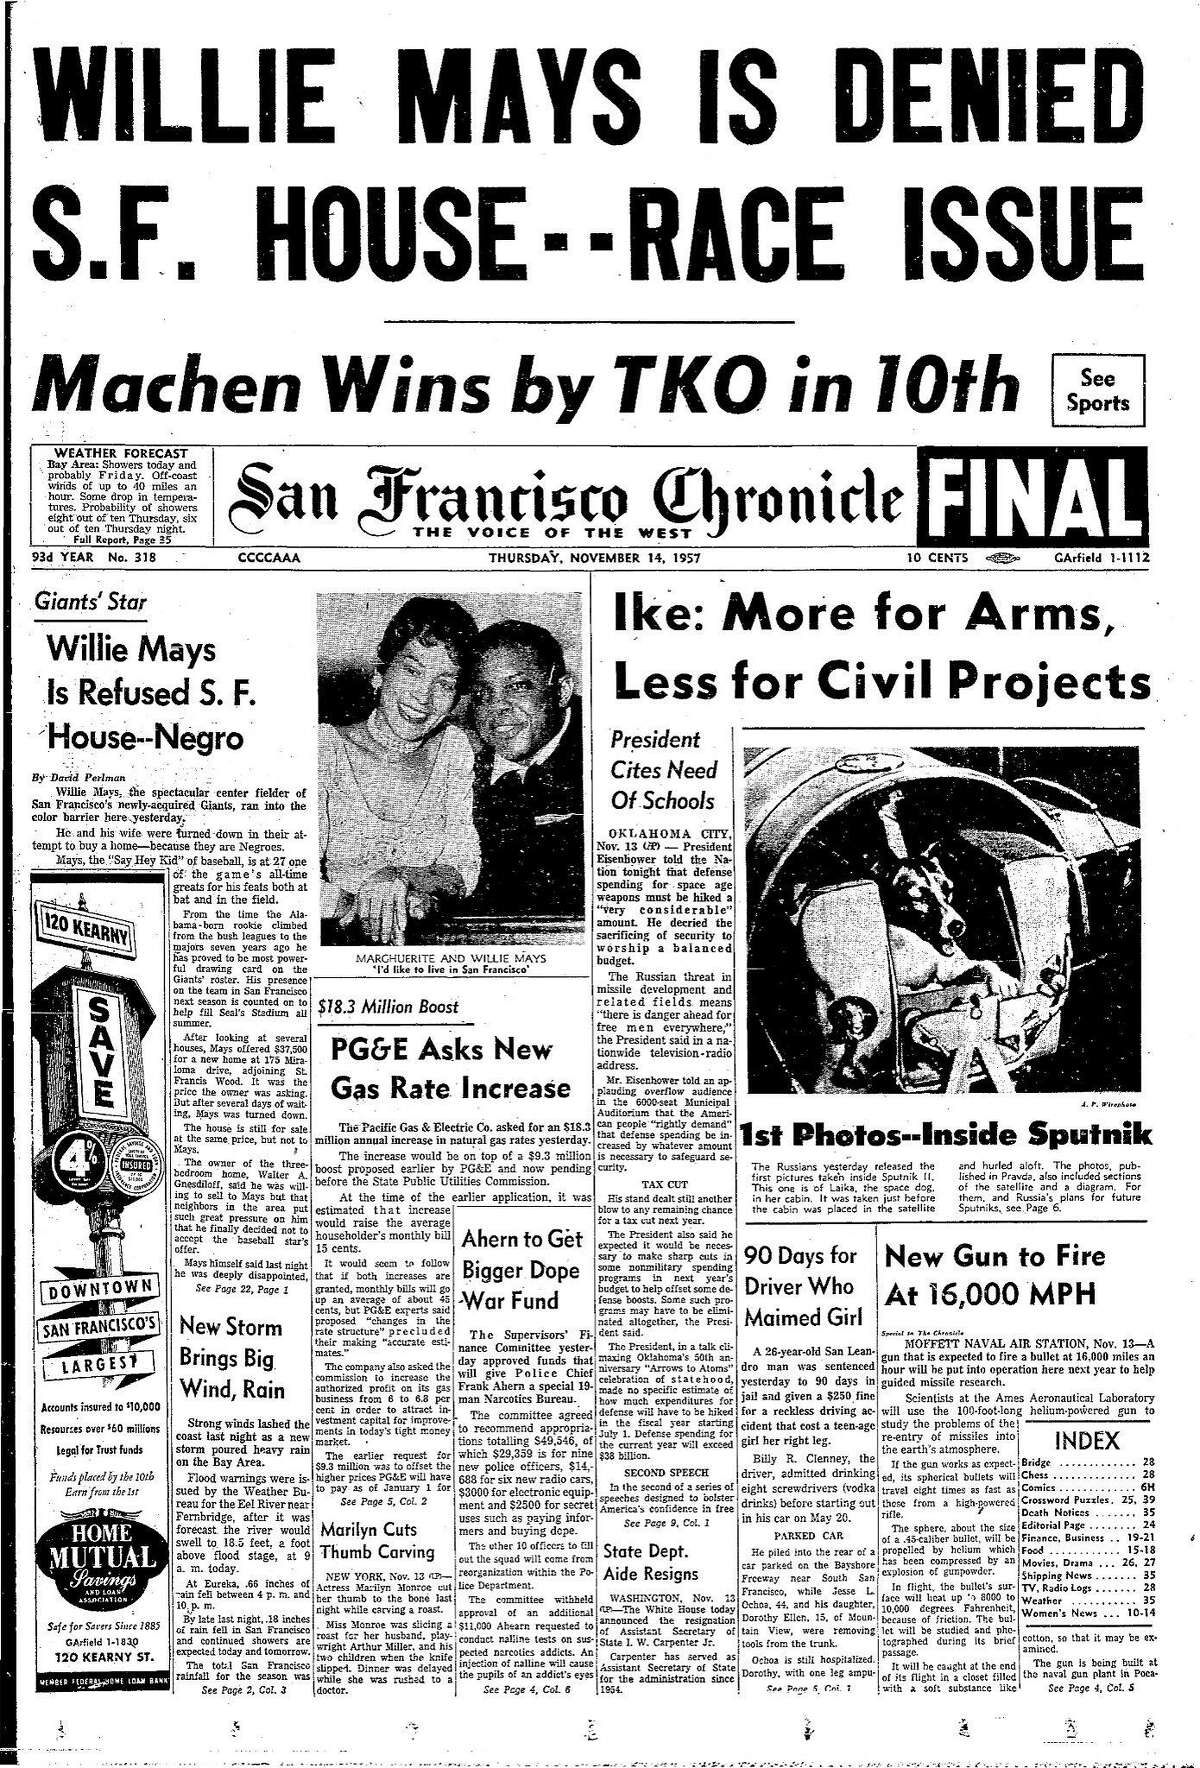 Historic Chronicle Front Page November 14, 1957 Willie Mays is denied his plan to buy a house in San Francisco, because of his race Chron365, Chroncover